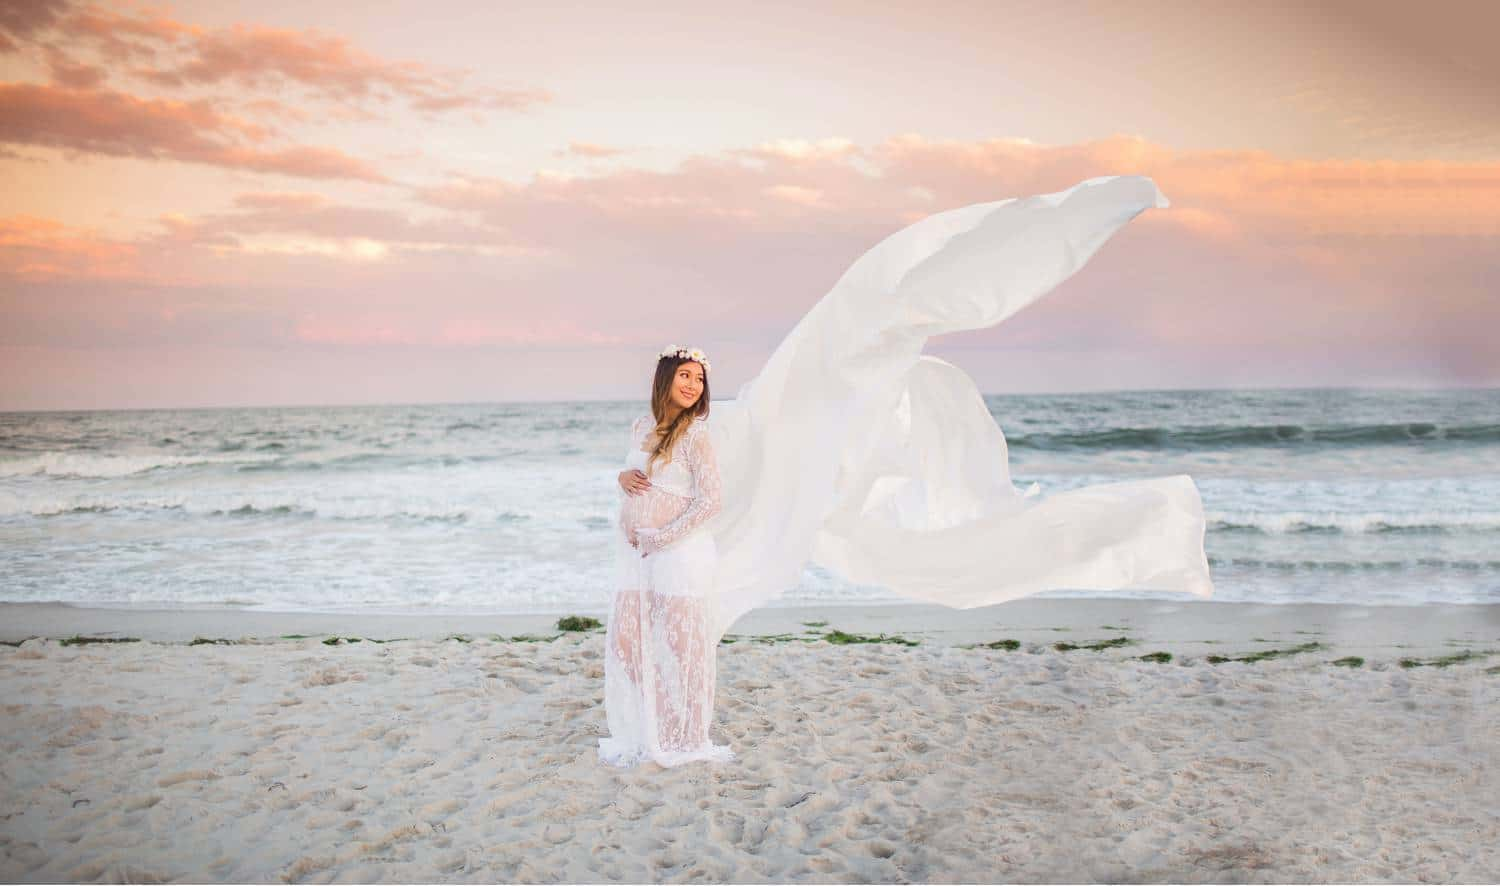 A pregnant woman stands on a beach at sunset. The sand is almost white, and dotted with footprints; and the sky is a beautiful pink tone. The pregnant woman wears a semi-sheer, lace, white gown that's billowing in the wind behind her. She cradles her baby bump as she looks back over her shoulder along the beach.